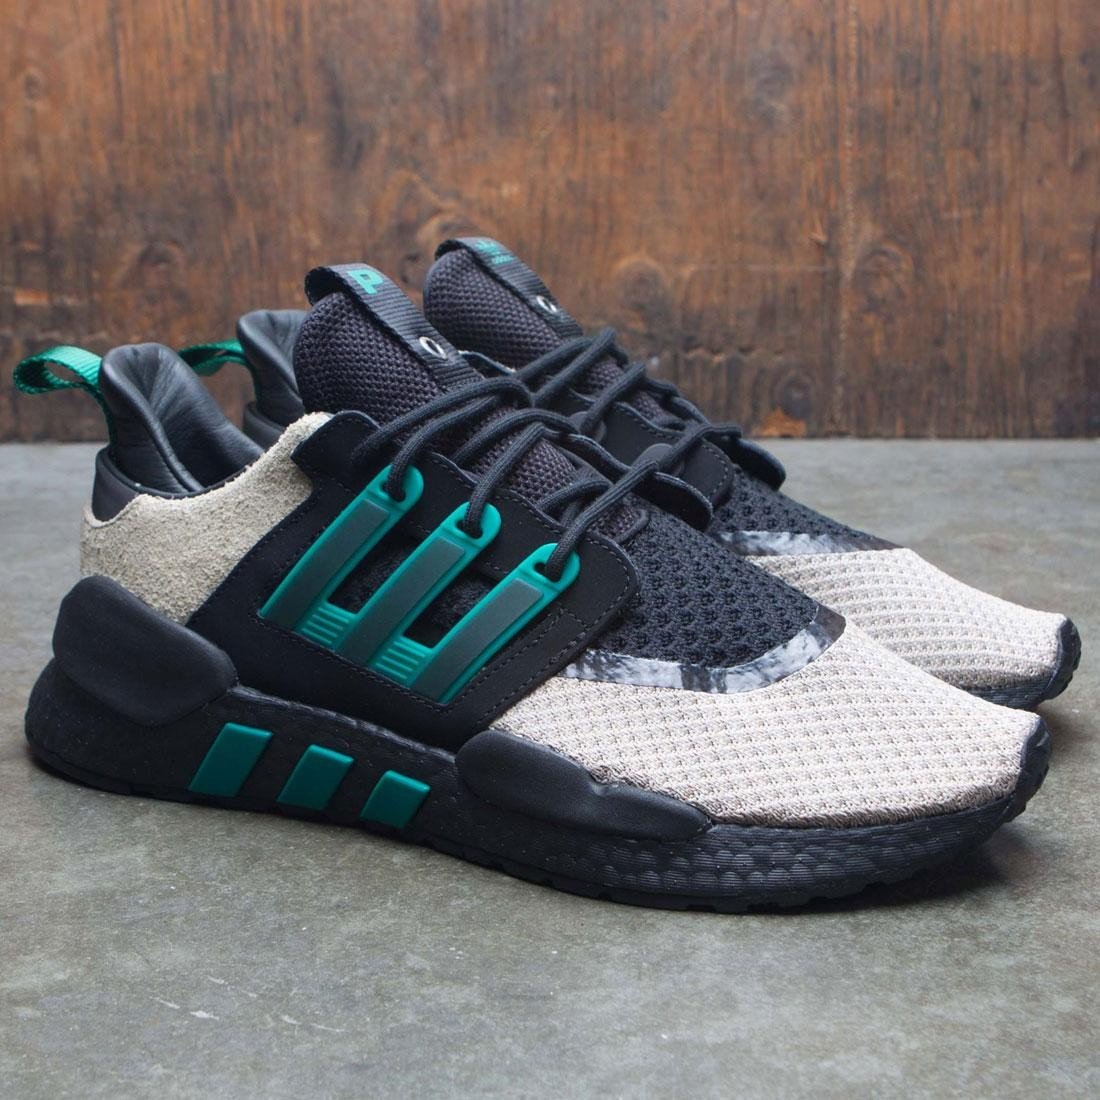 best sneakers 6c6f3 02821 Adidas Consortium x Packer Shoes Men EQT 91/18 (black / sub green / blanch  cargo)